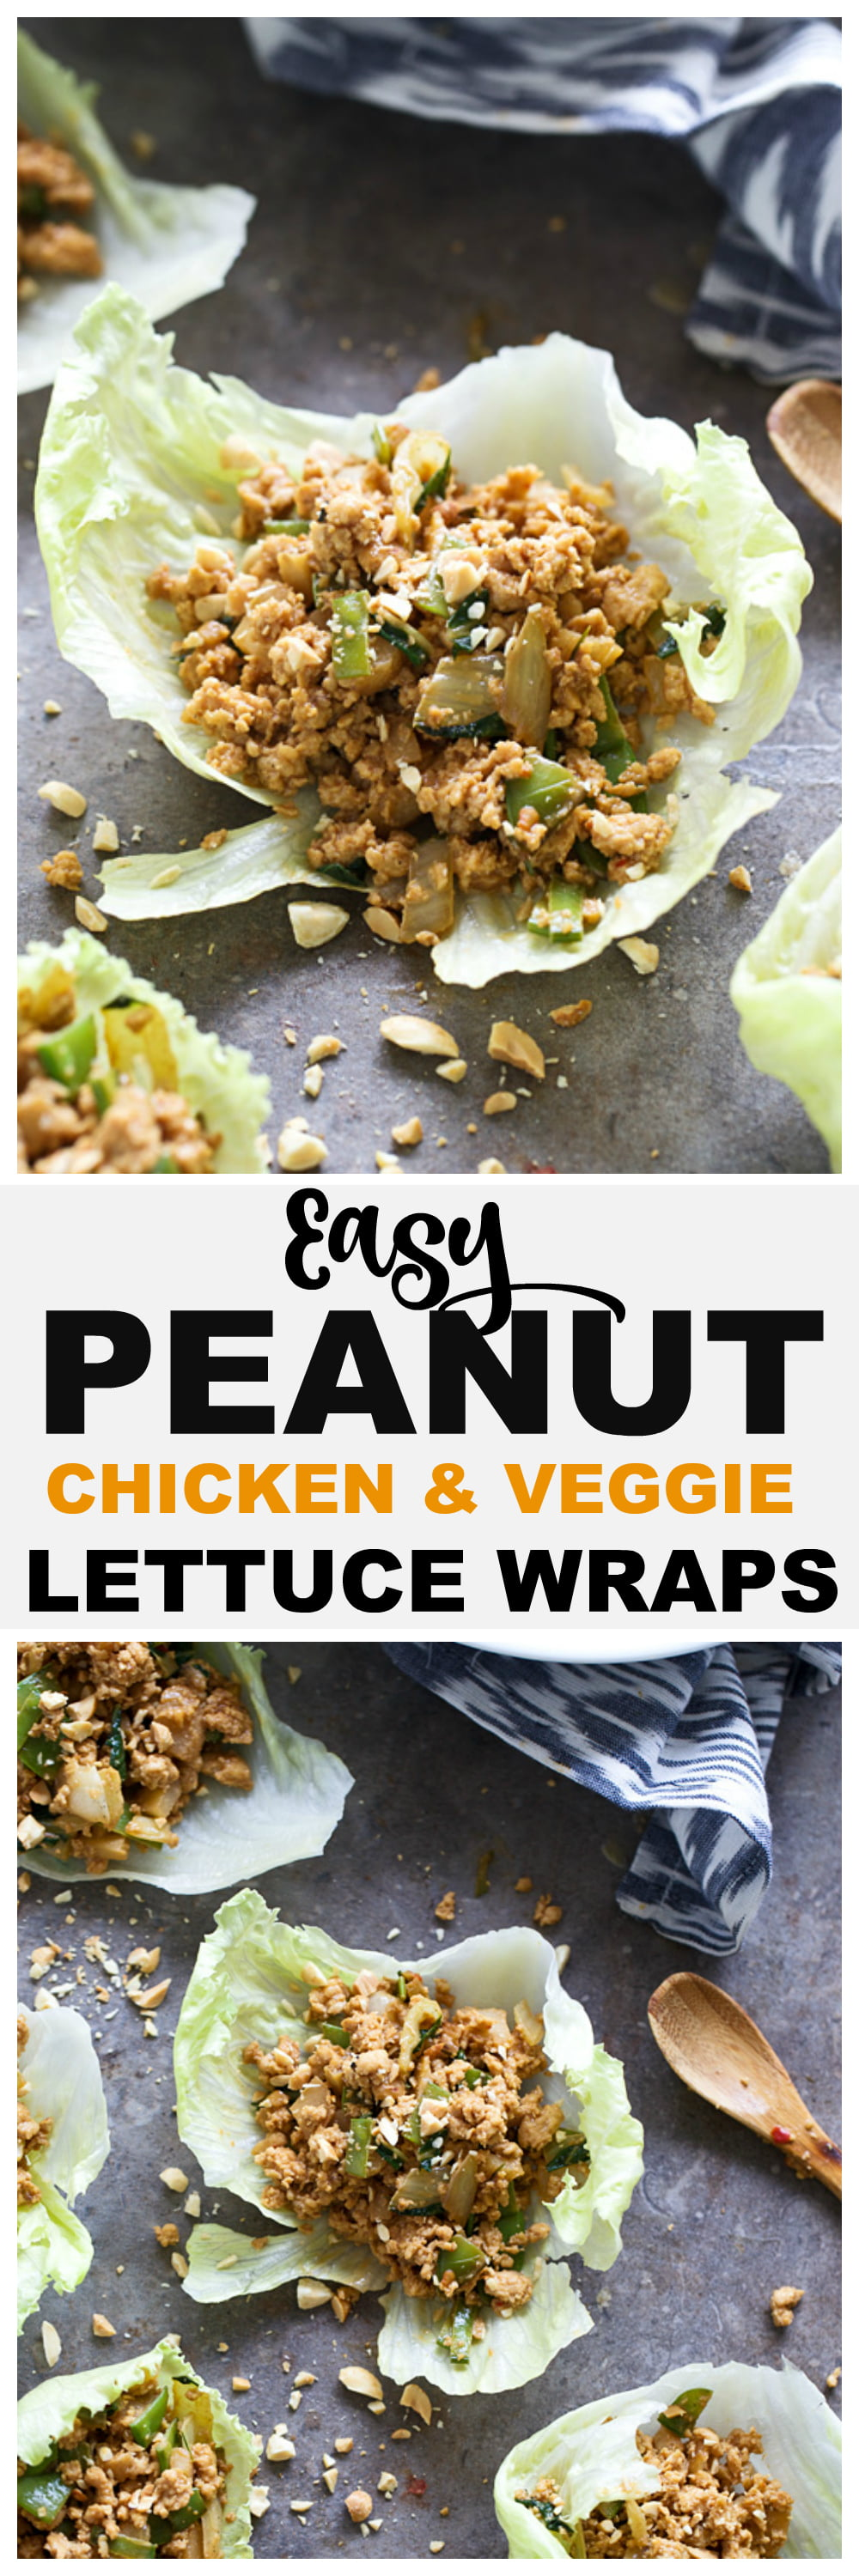 Better than Peanut Chicken & Veggie Lettuce Wraps